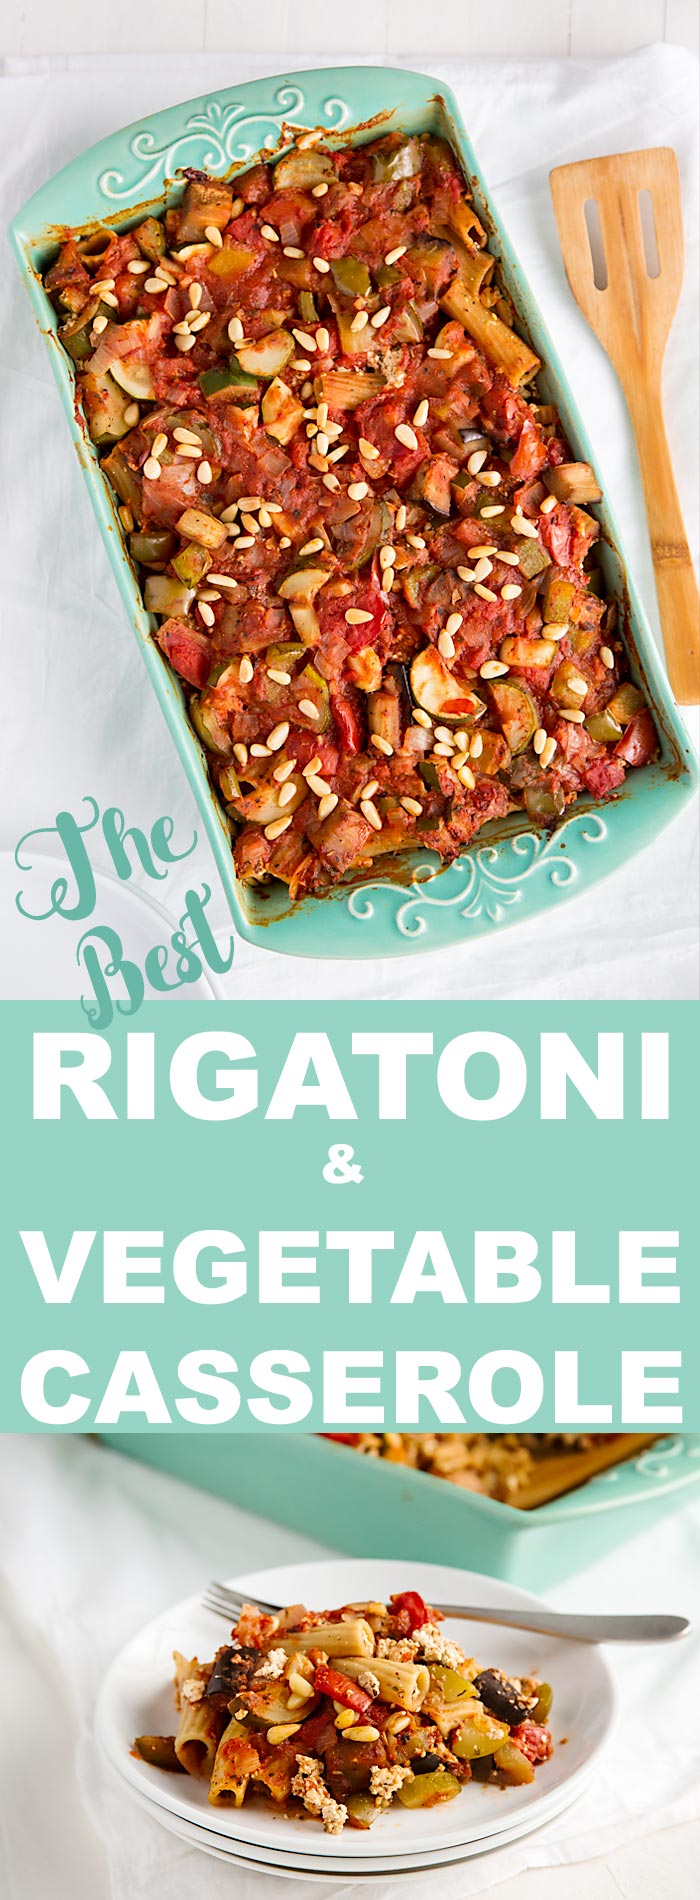 This vegan rigatoni casserole is similar to lasagna, yet it uses less pasta and more vegetables than most lasagna recipes.